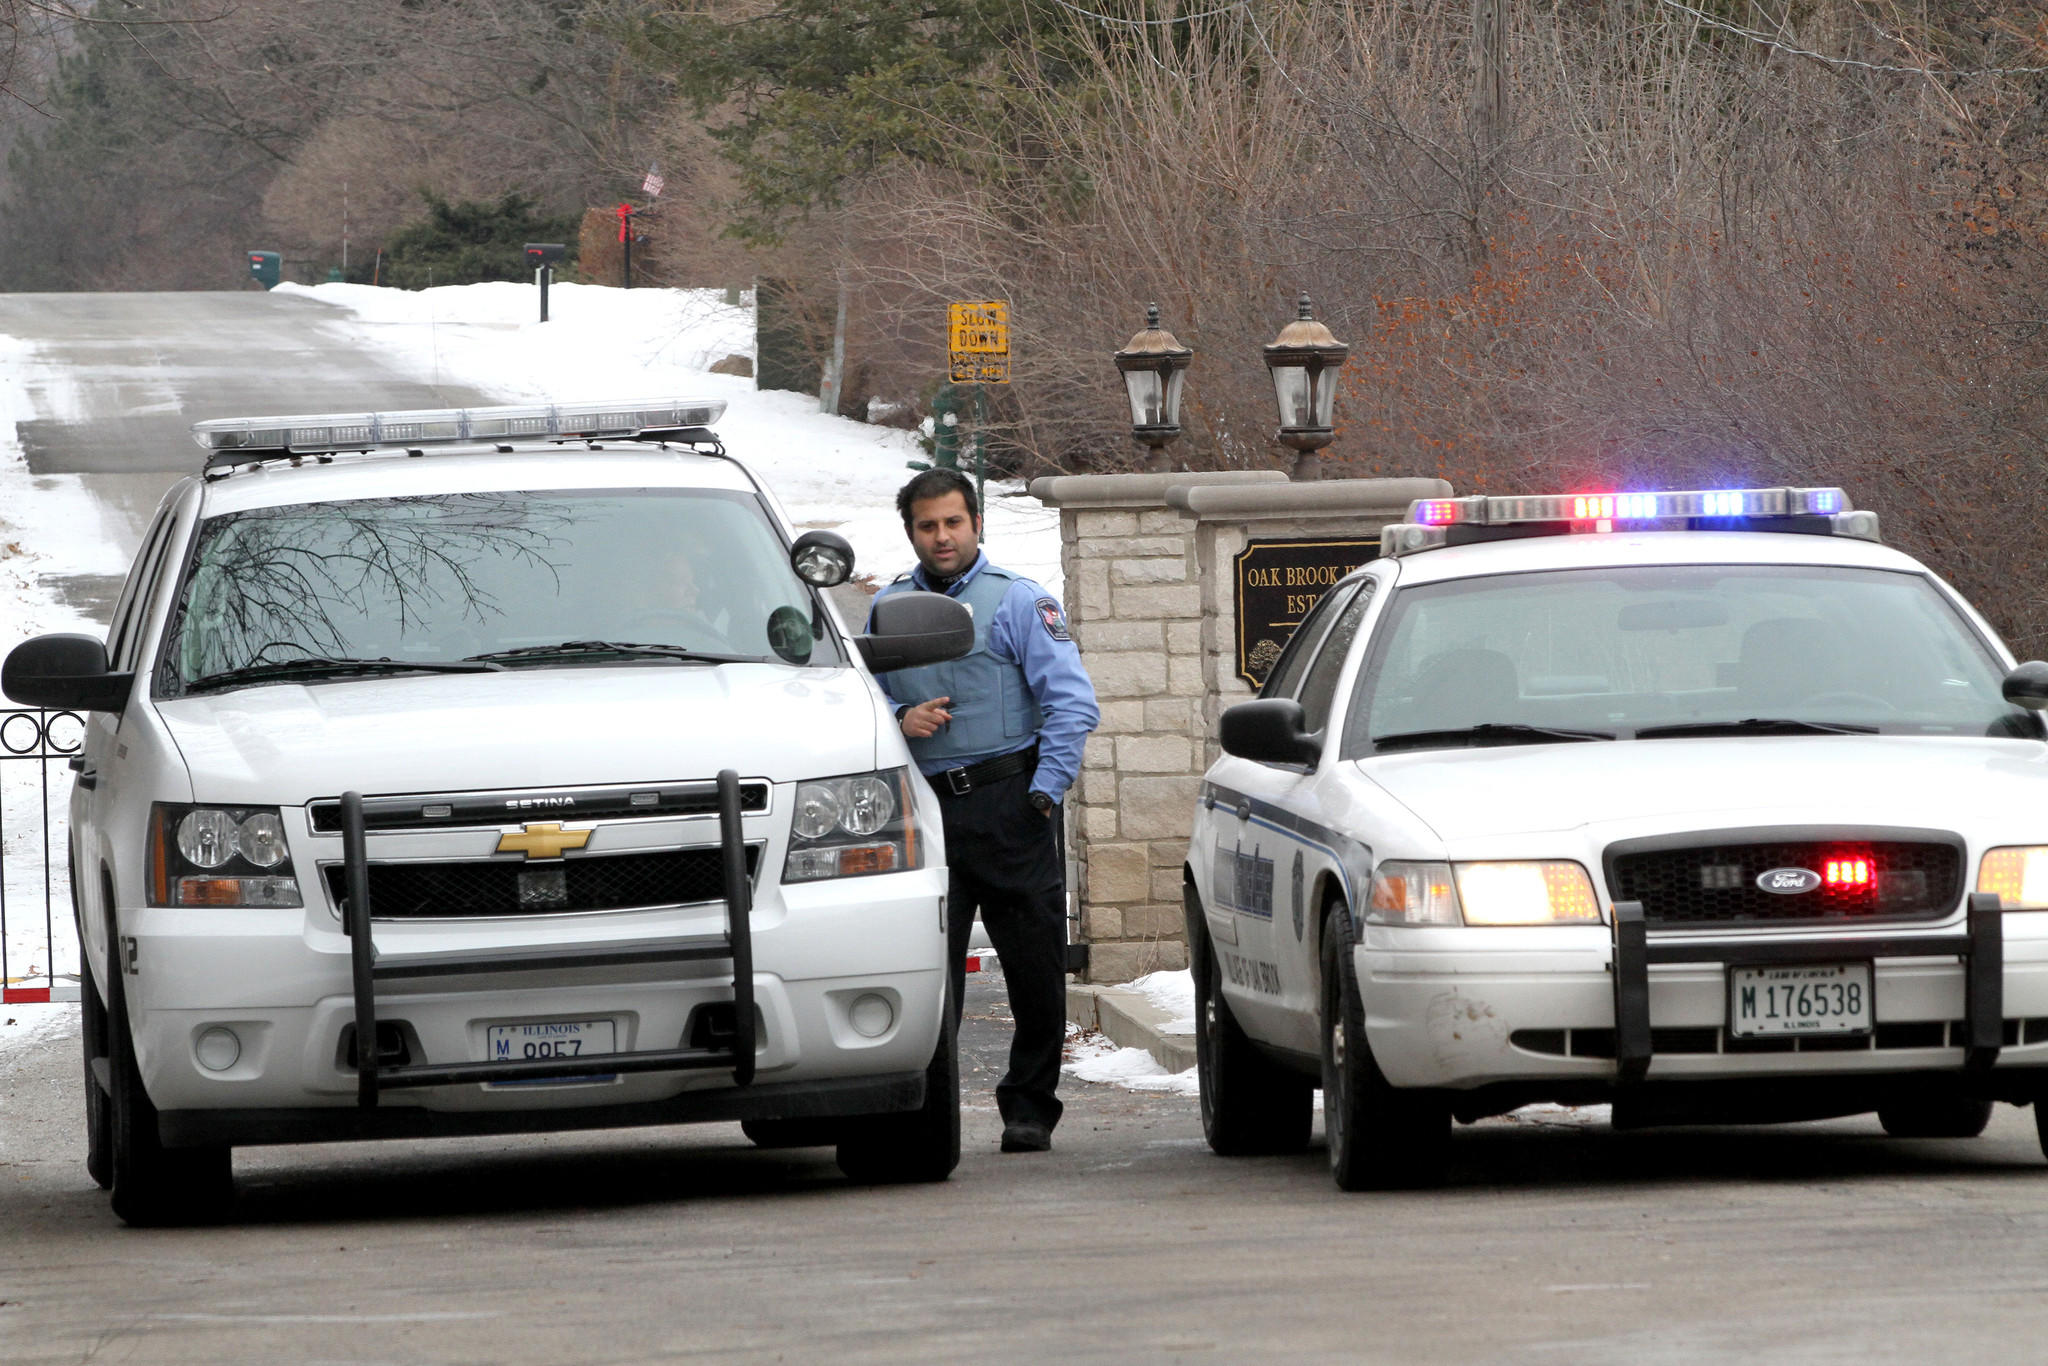 Oak Brook police block access to Oak Brook Hills Estates after one person died and seven were injured from an apparent carbon monoxide poisoning at a residence.